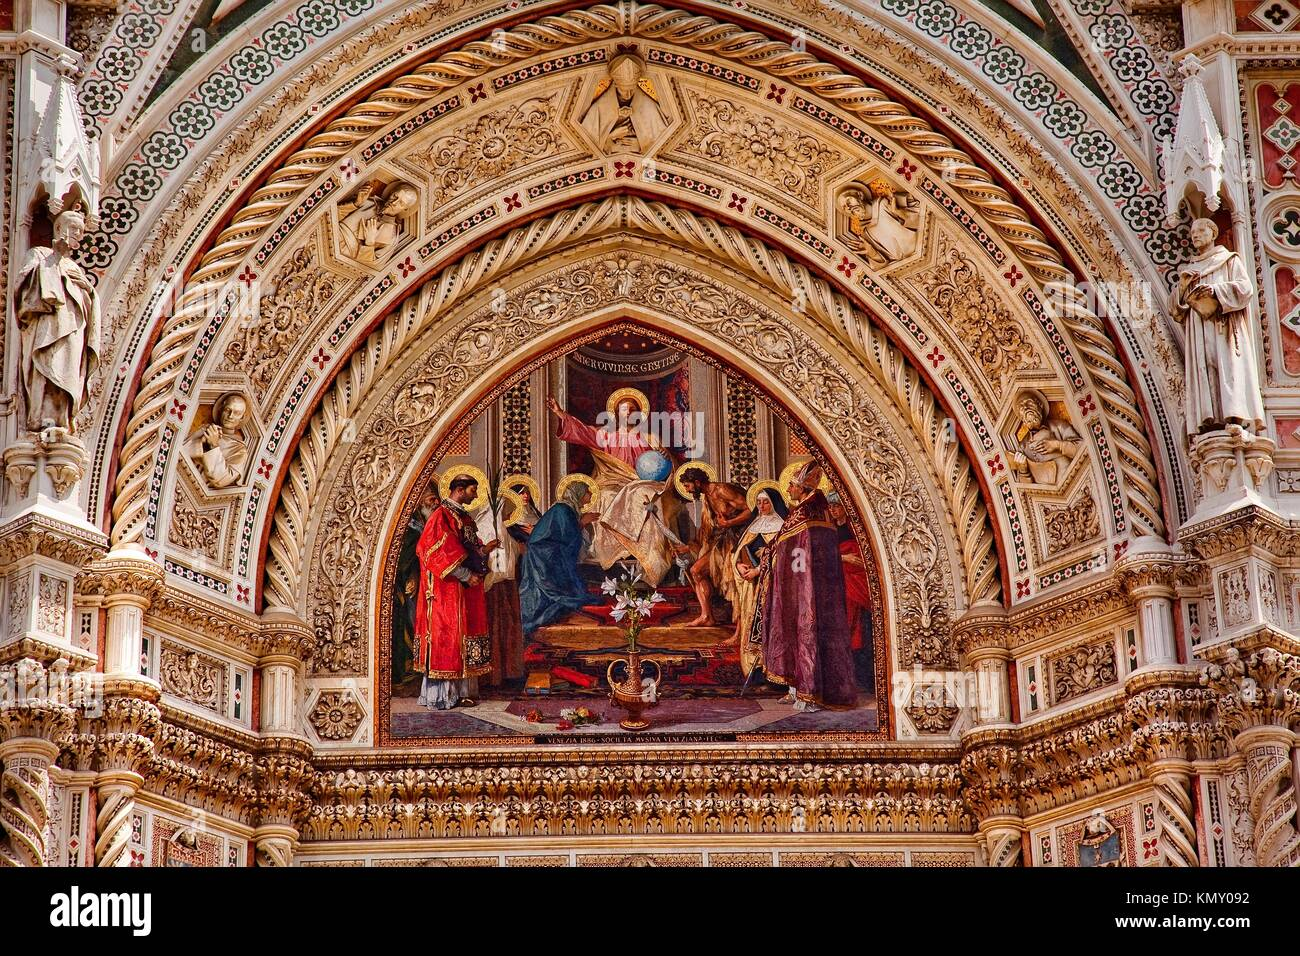 Jesus Mosaic Facade Statues, Duomo Basilica Cathedral Church Florence Italy - Stock Image